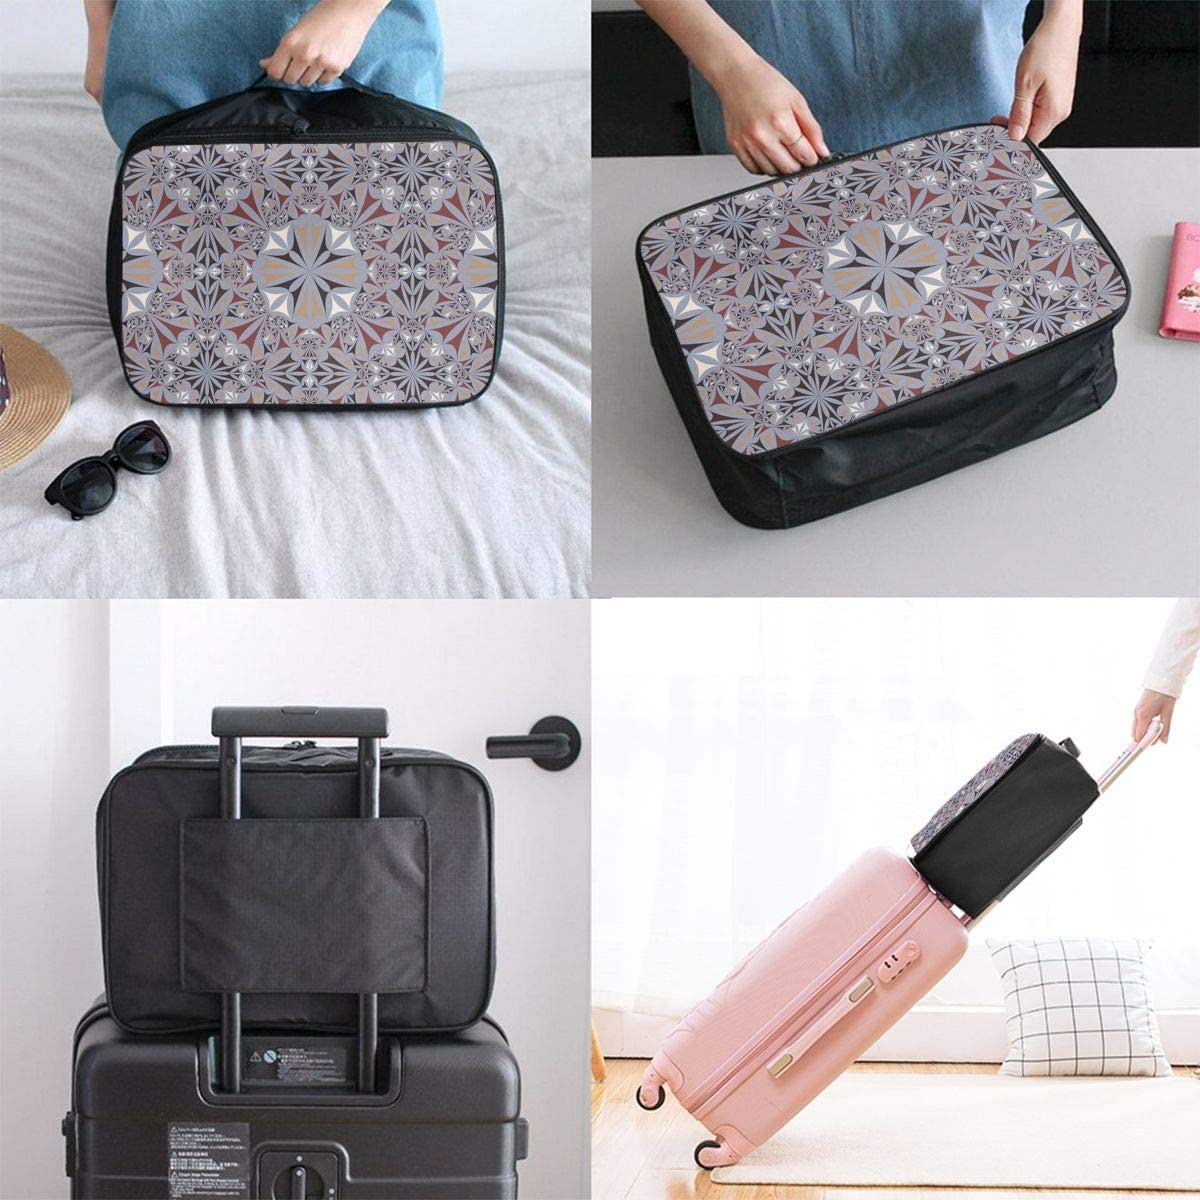 Yunshm Triangle Pattern Kaleidoscope Seamless Texture Customized Trolley Handbag Waterproof Unisex Large Capacity For Business Travel Storage